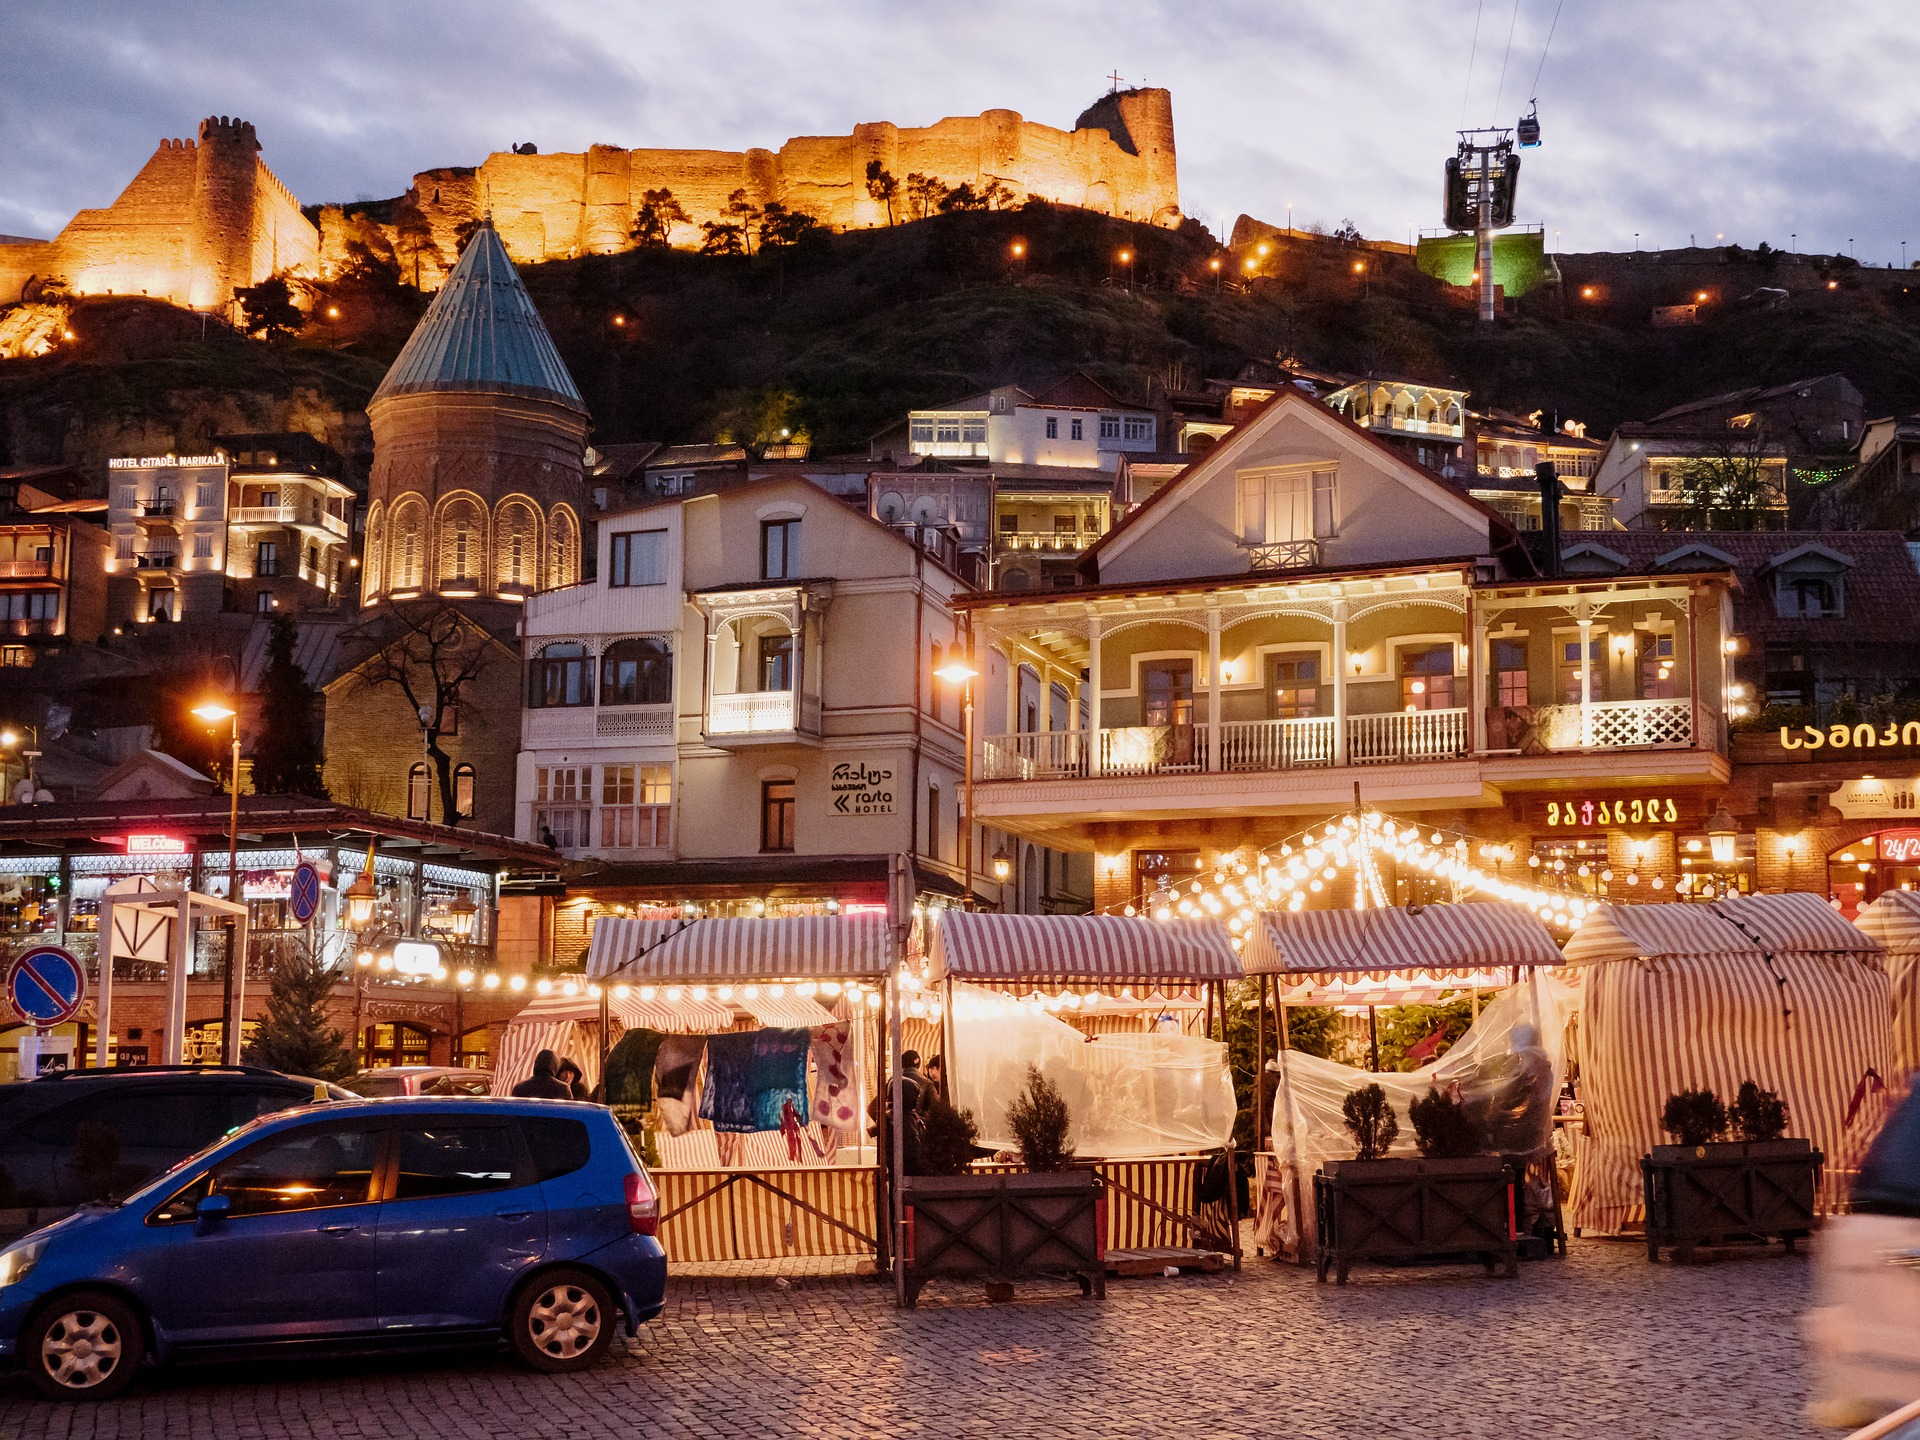 Tbilisi's old town is the best place to start your Georgian wine journey and immerse in the culture. A couple of days here and then its off to Kakheti for the main event.